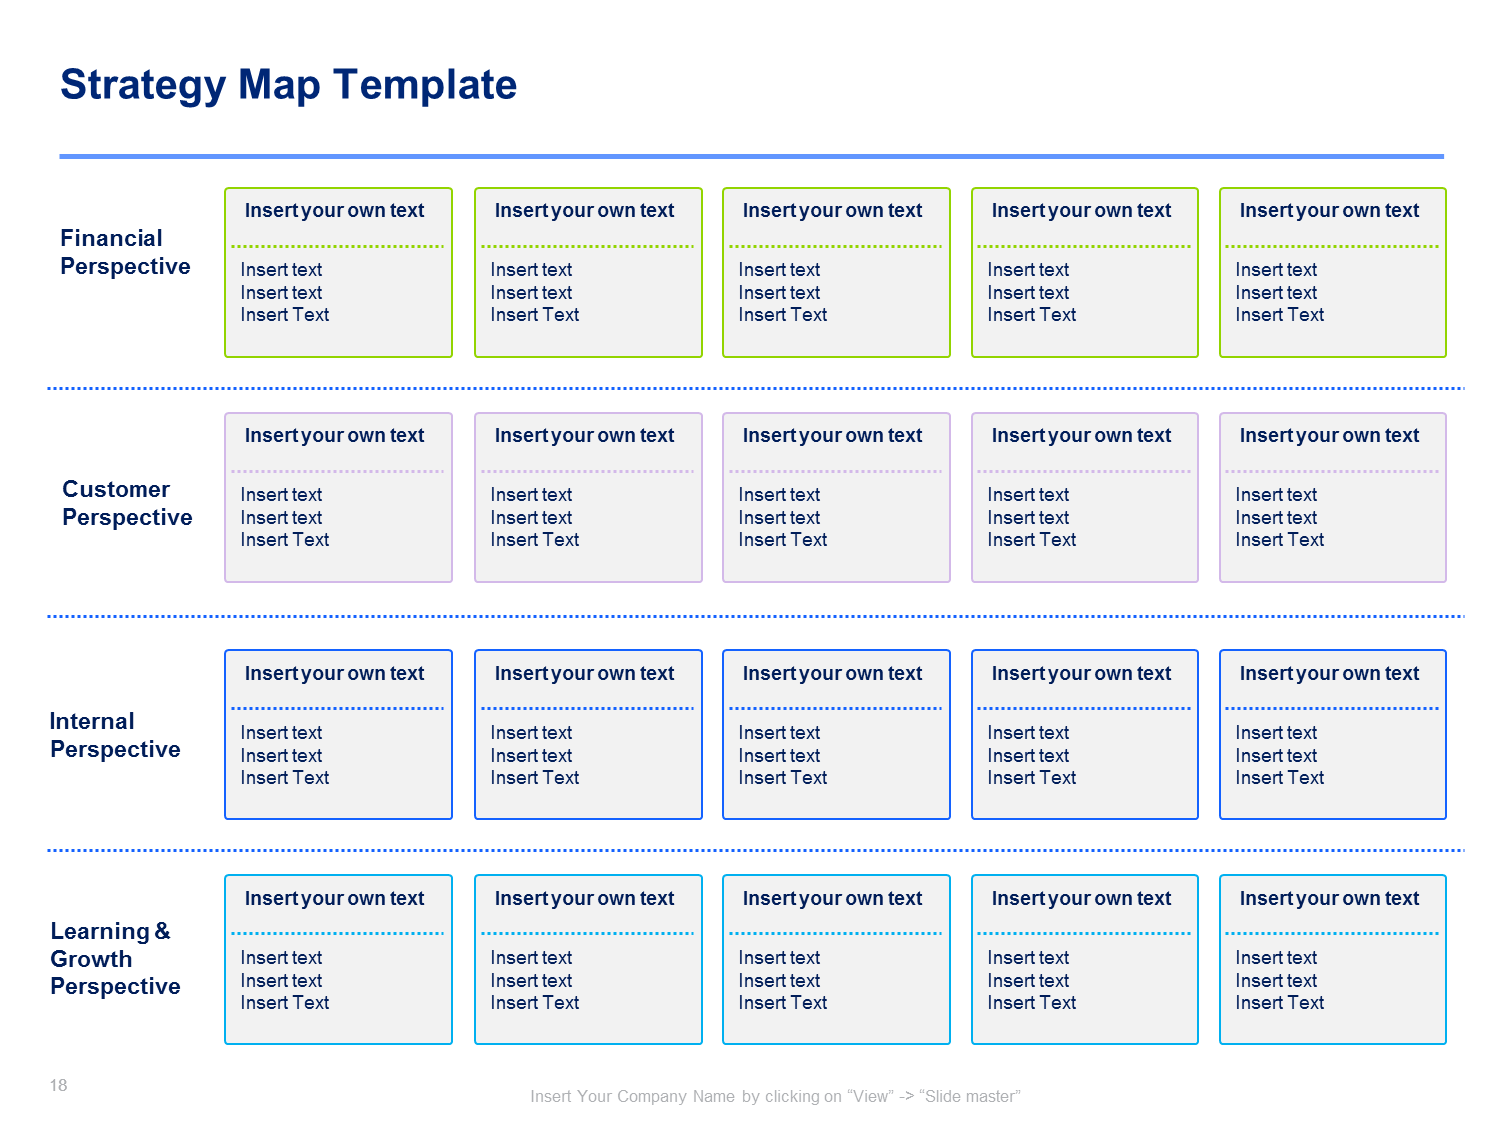 Continuous improvement tools Strategy map, Marketing